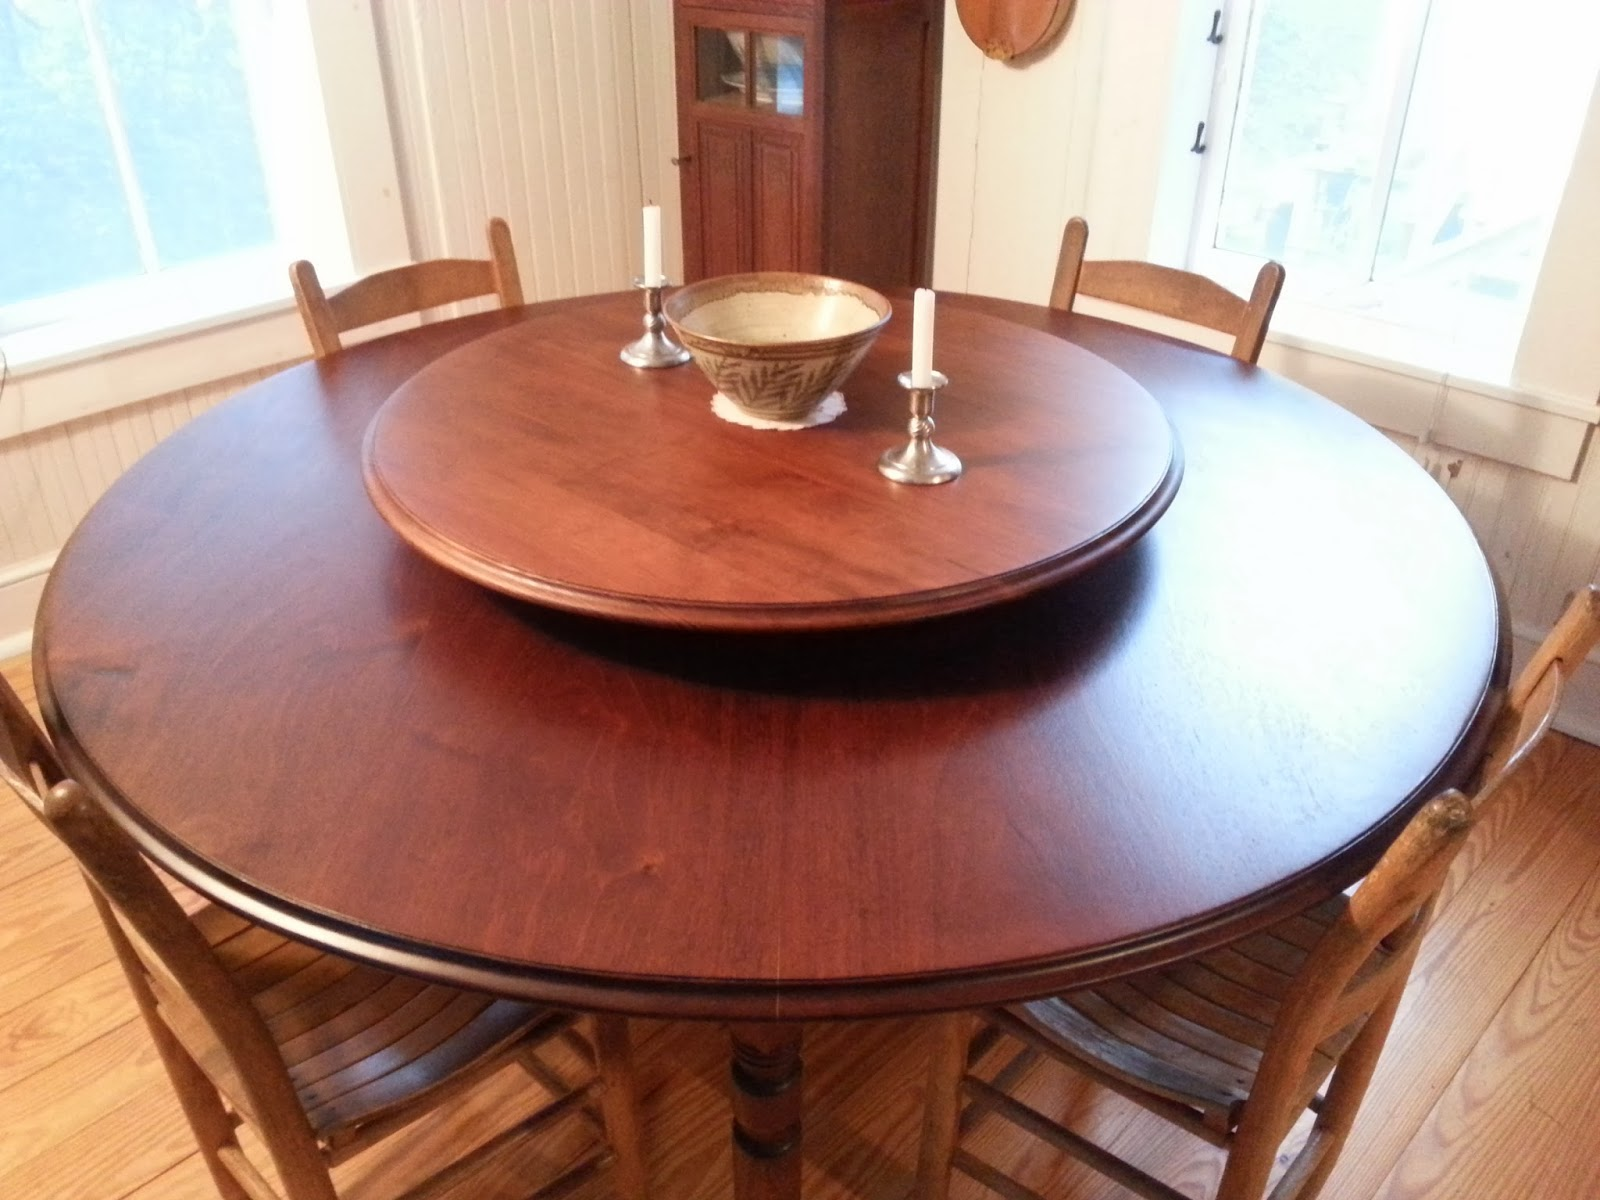 In 2017 I Mentioned Lazy Susan Tables My Article About Sam Jones Wrote Addition To His Home Had A State Of The Art Woodworking Built On